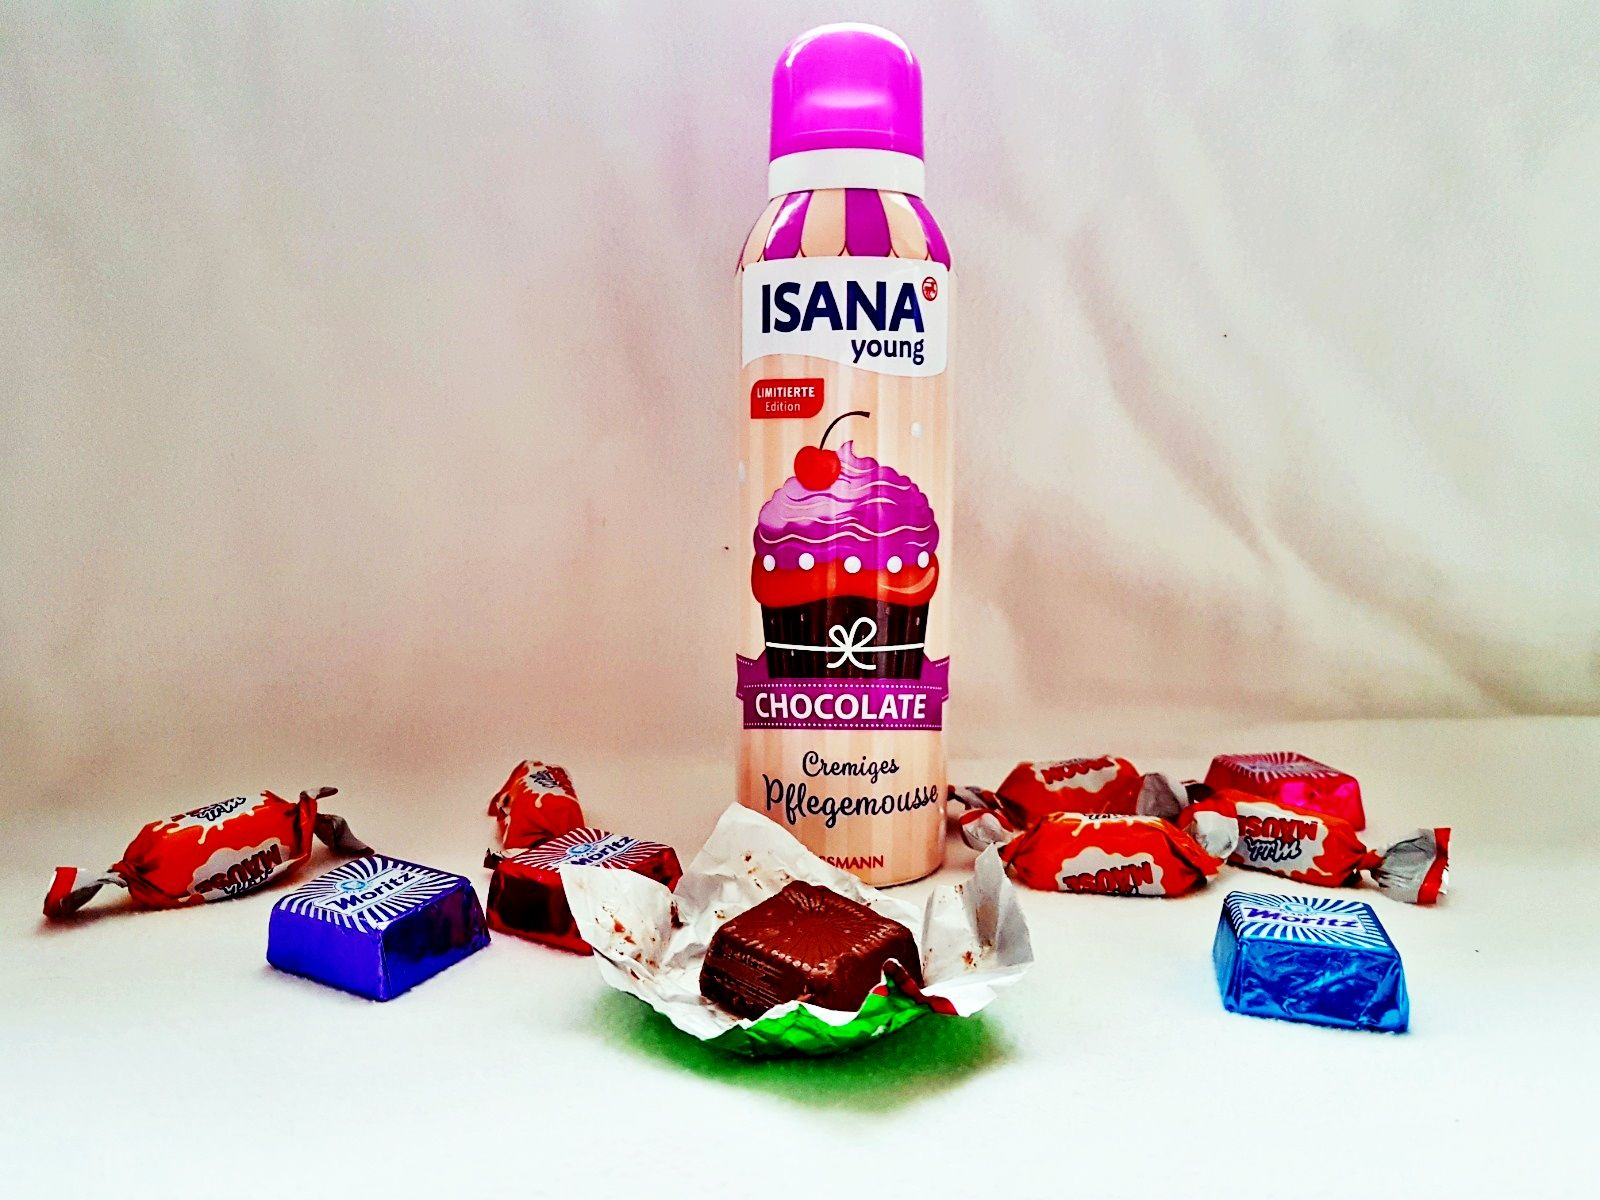 Isana Cremiges Pflegemousse Chocolate